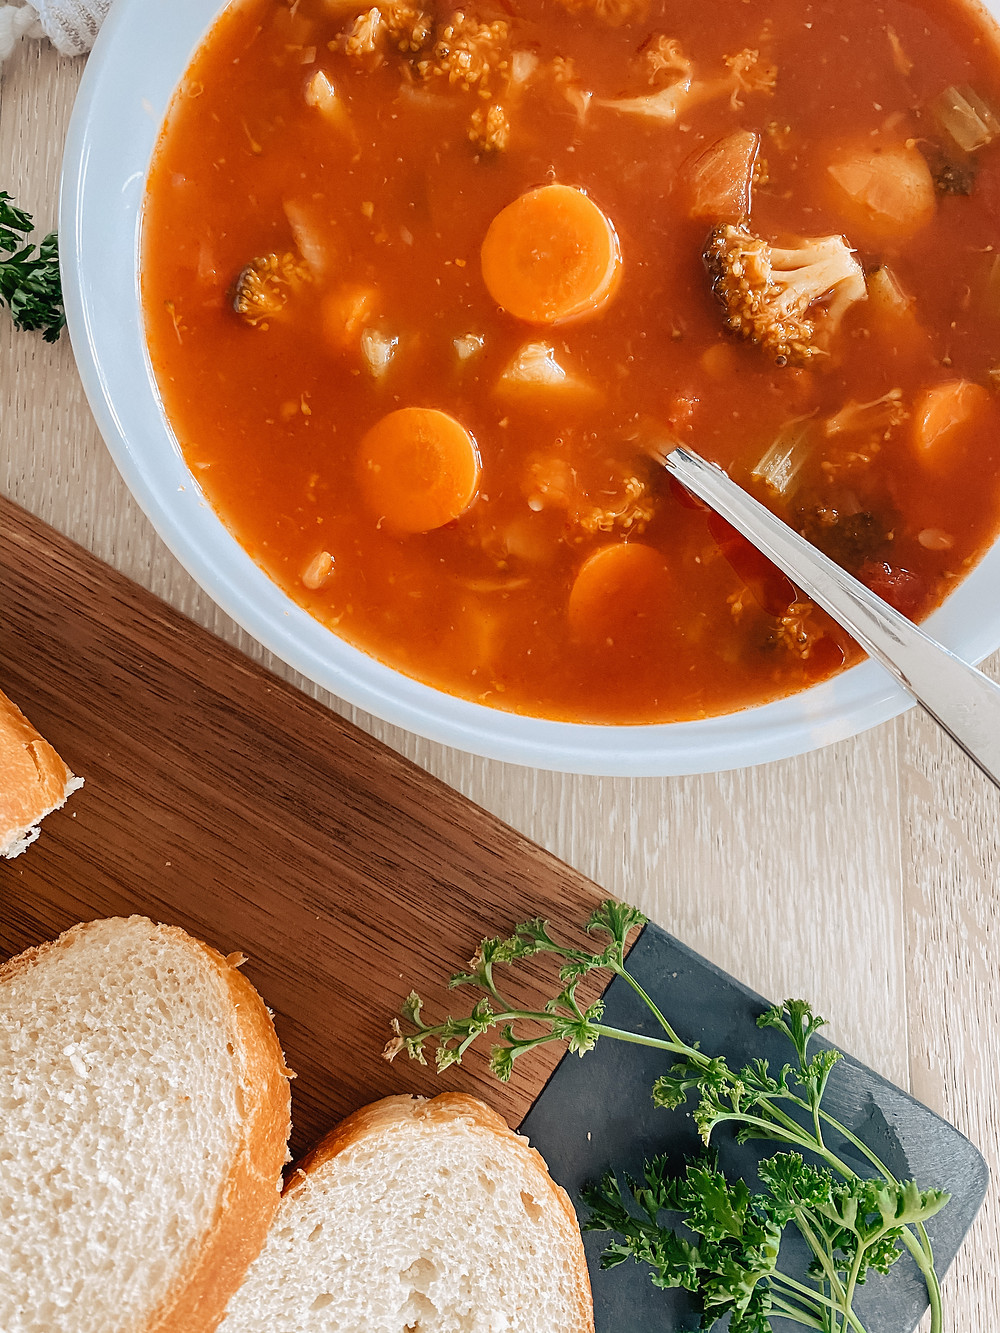 A bowl of hearty vegetable soup sits on the table surrounded fresh herbs and fresh sliced bread.